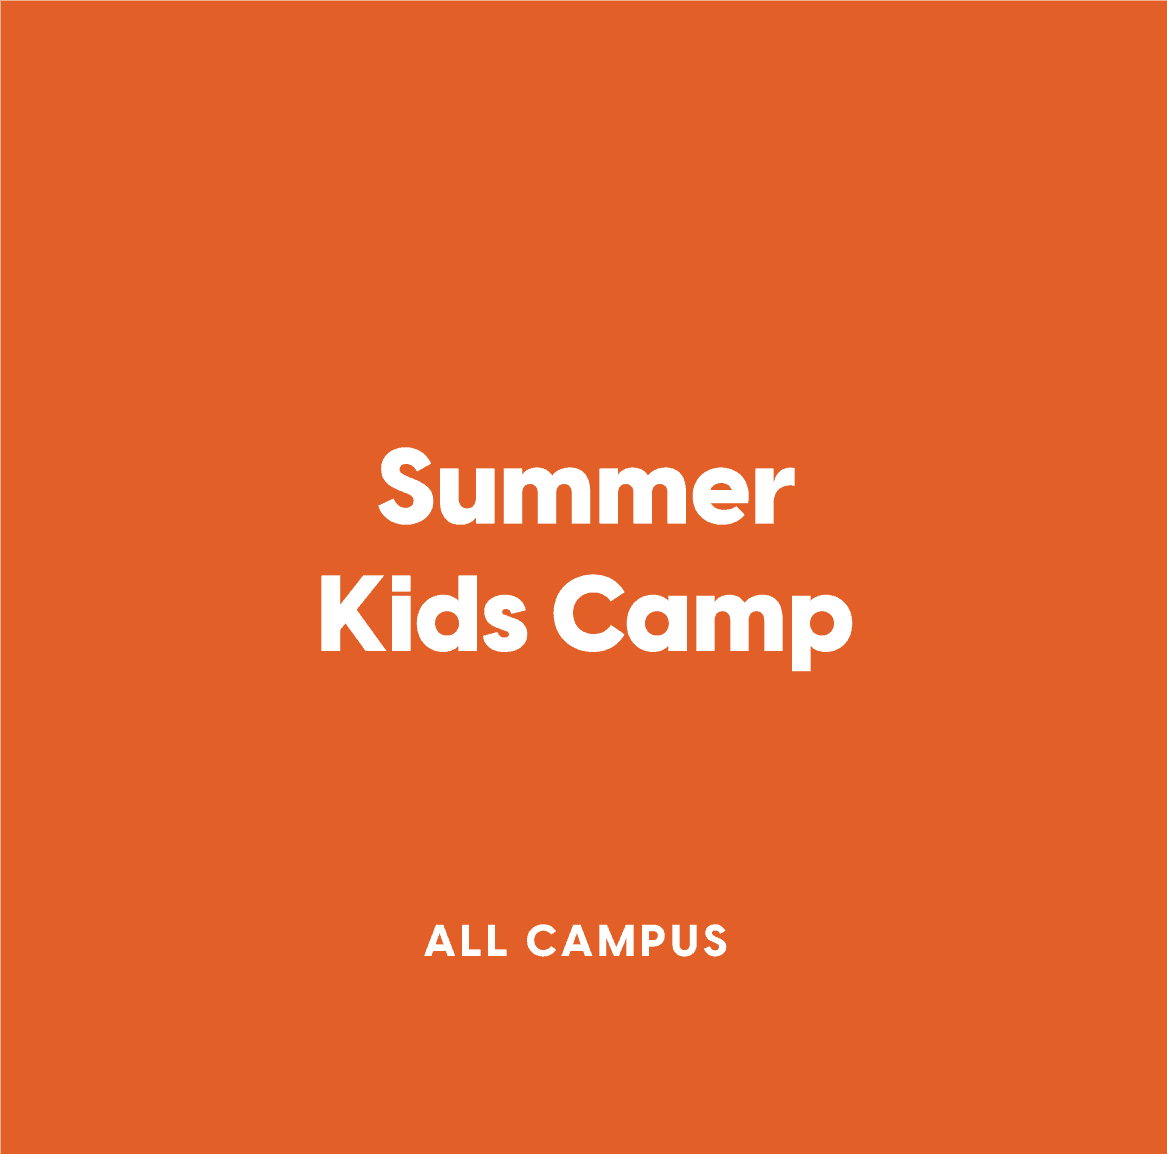 All-Campus Summer Kids Camp